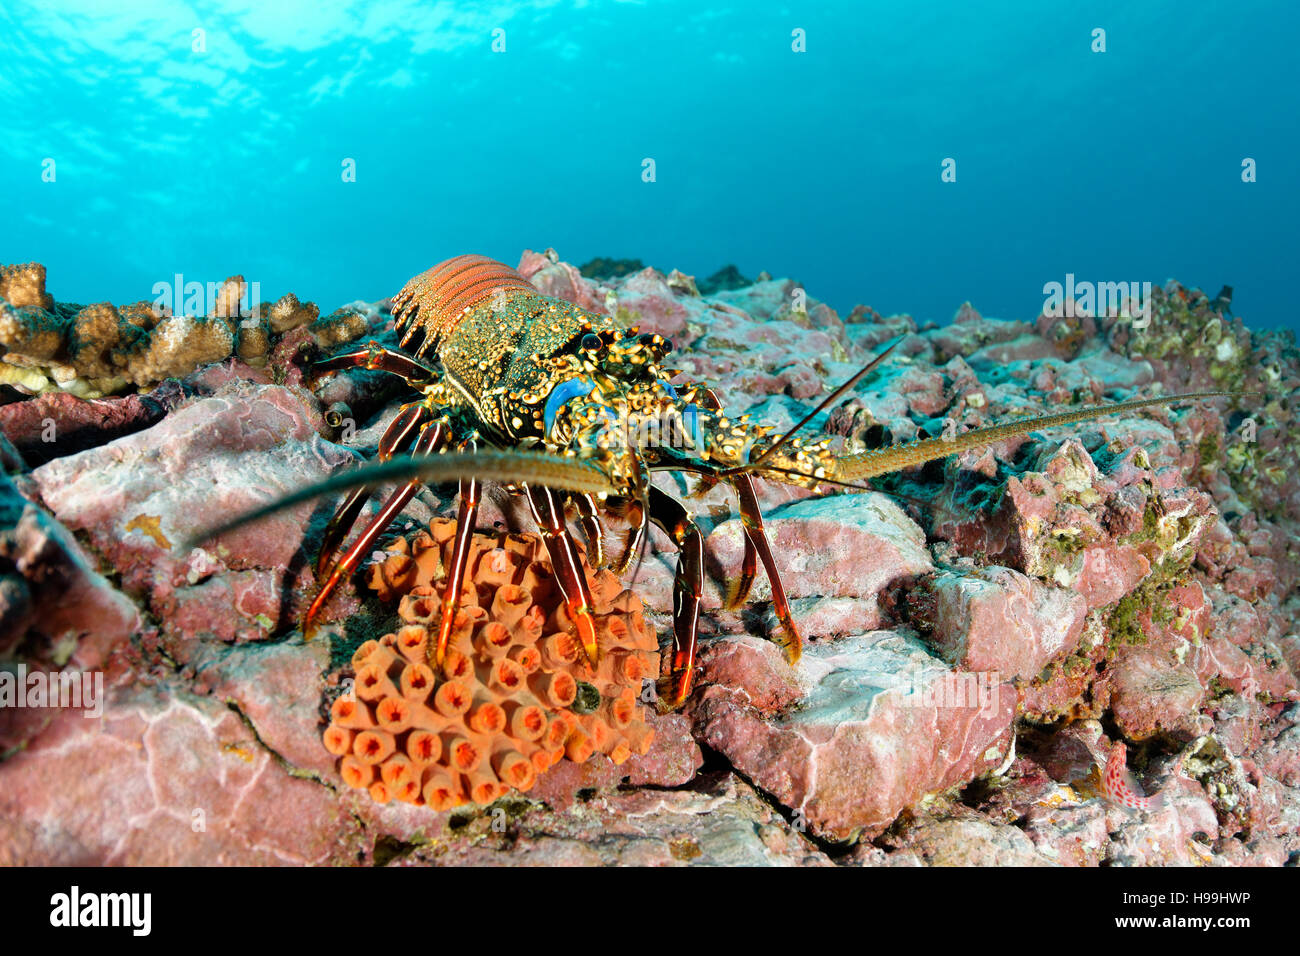 brown spiny lobster, Malpelo Island, Colombia, East Pacific Ocean - Stock Image